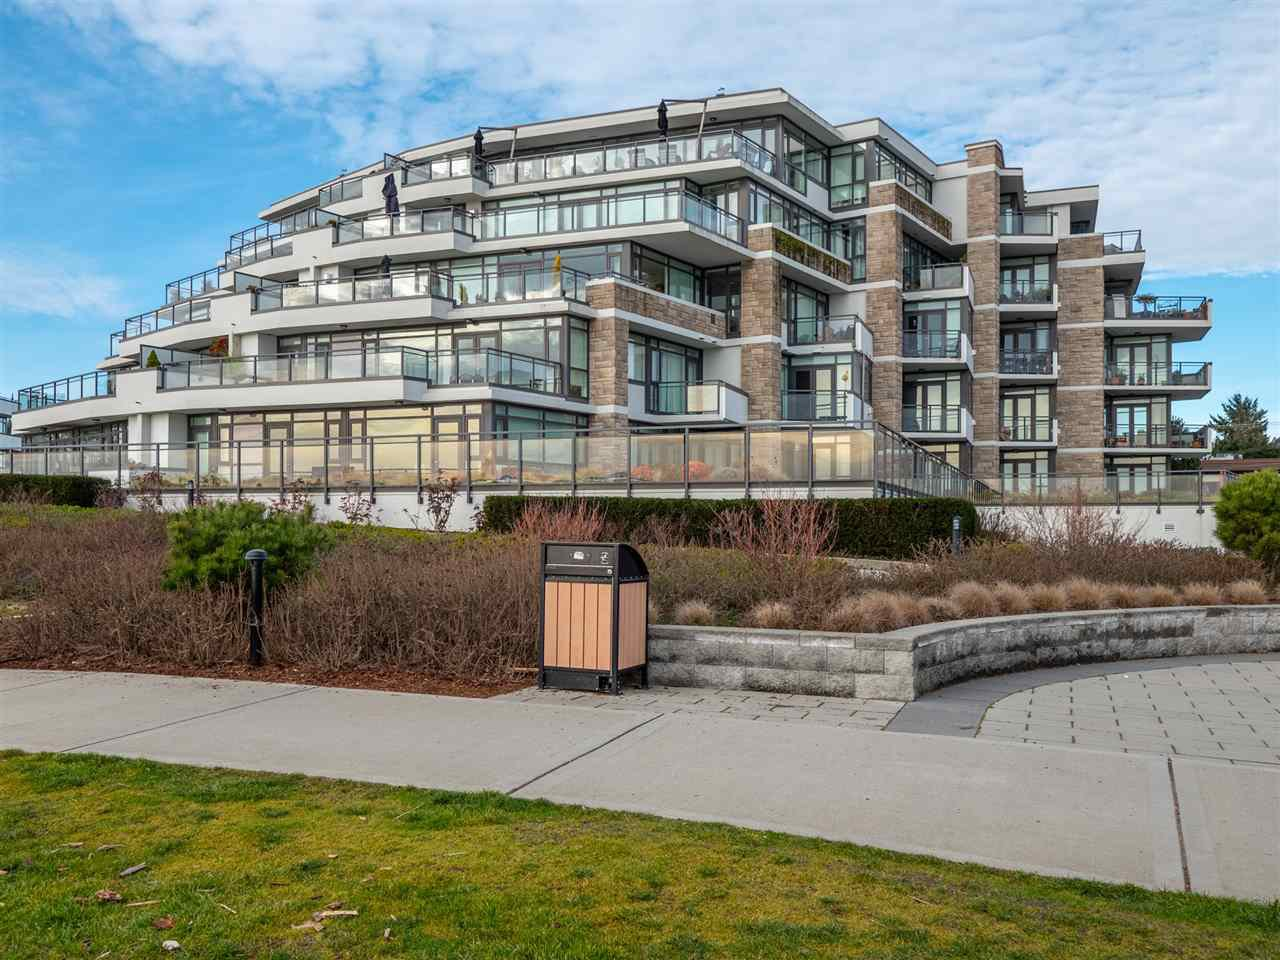 "Main Photo: 211 5665 TEREDO Street in Sechelt: Sechelt District Condo for sale in ""WATERMARK AT SECHELT"" (Sunshine Coast)  : MLS®# R2339124"